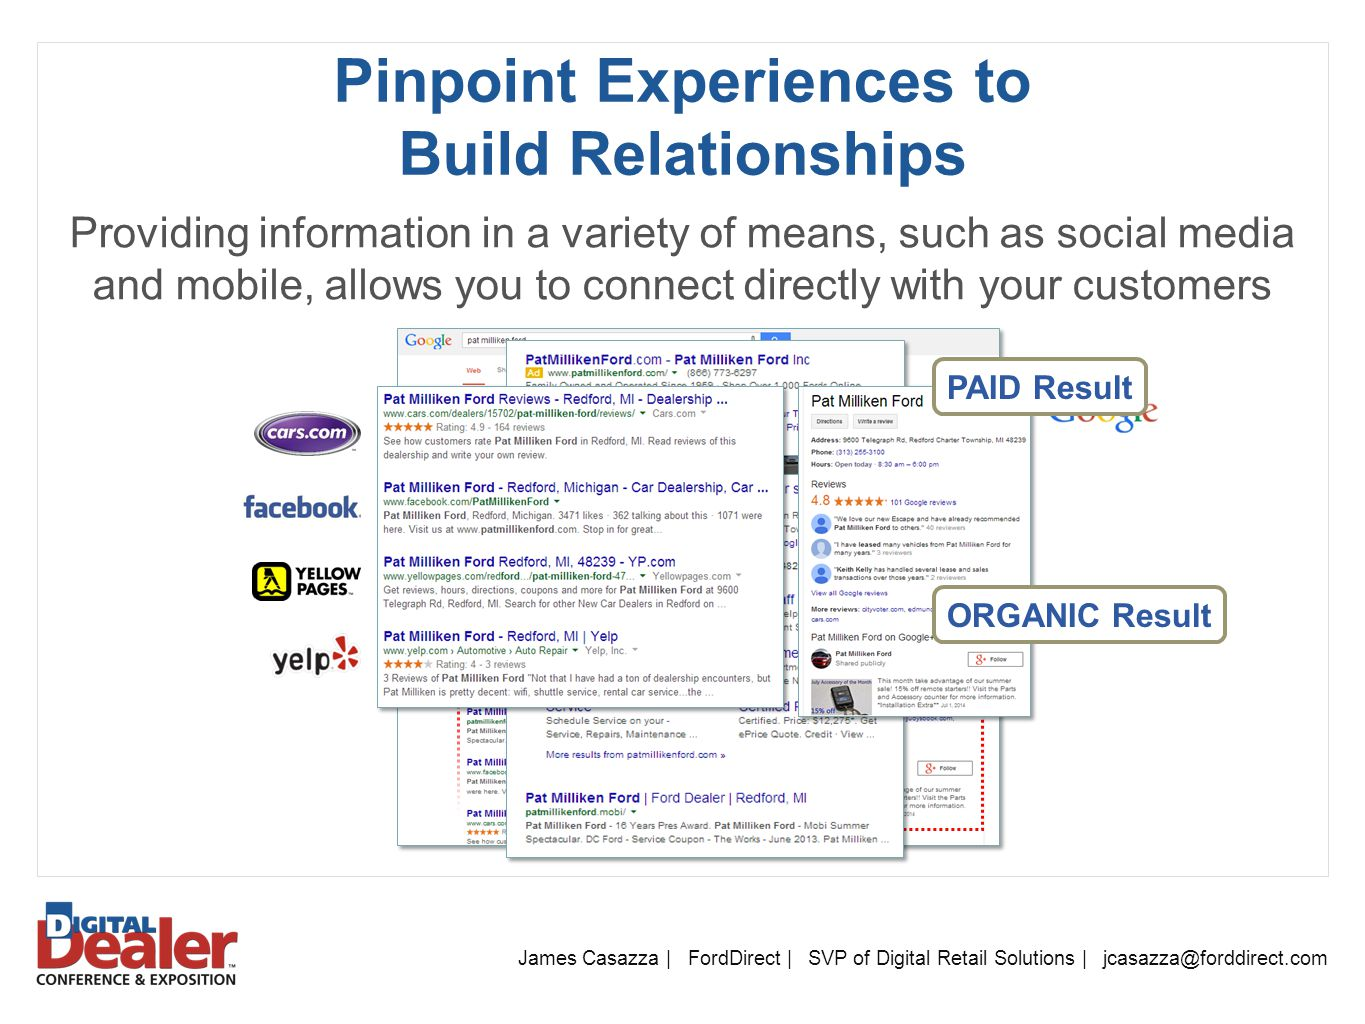 Pinpoint Experiences to Build Relationships